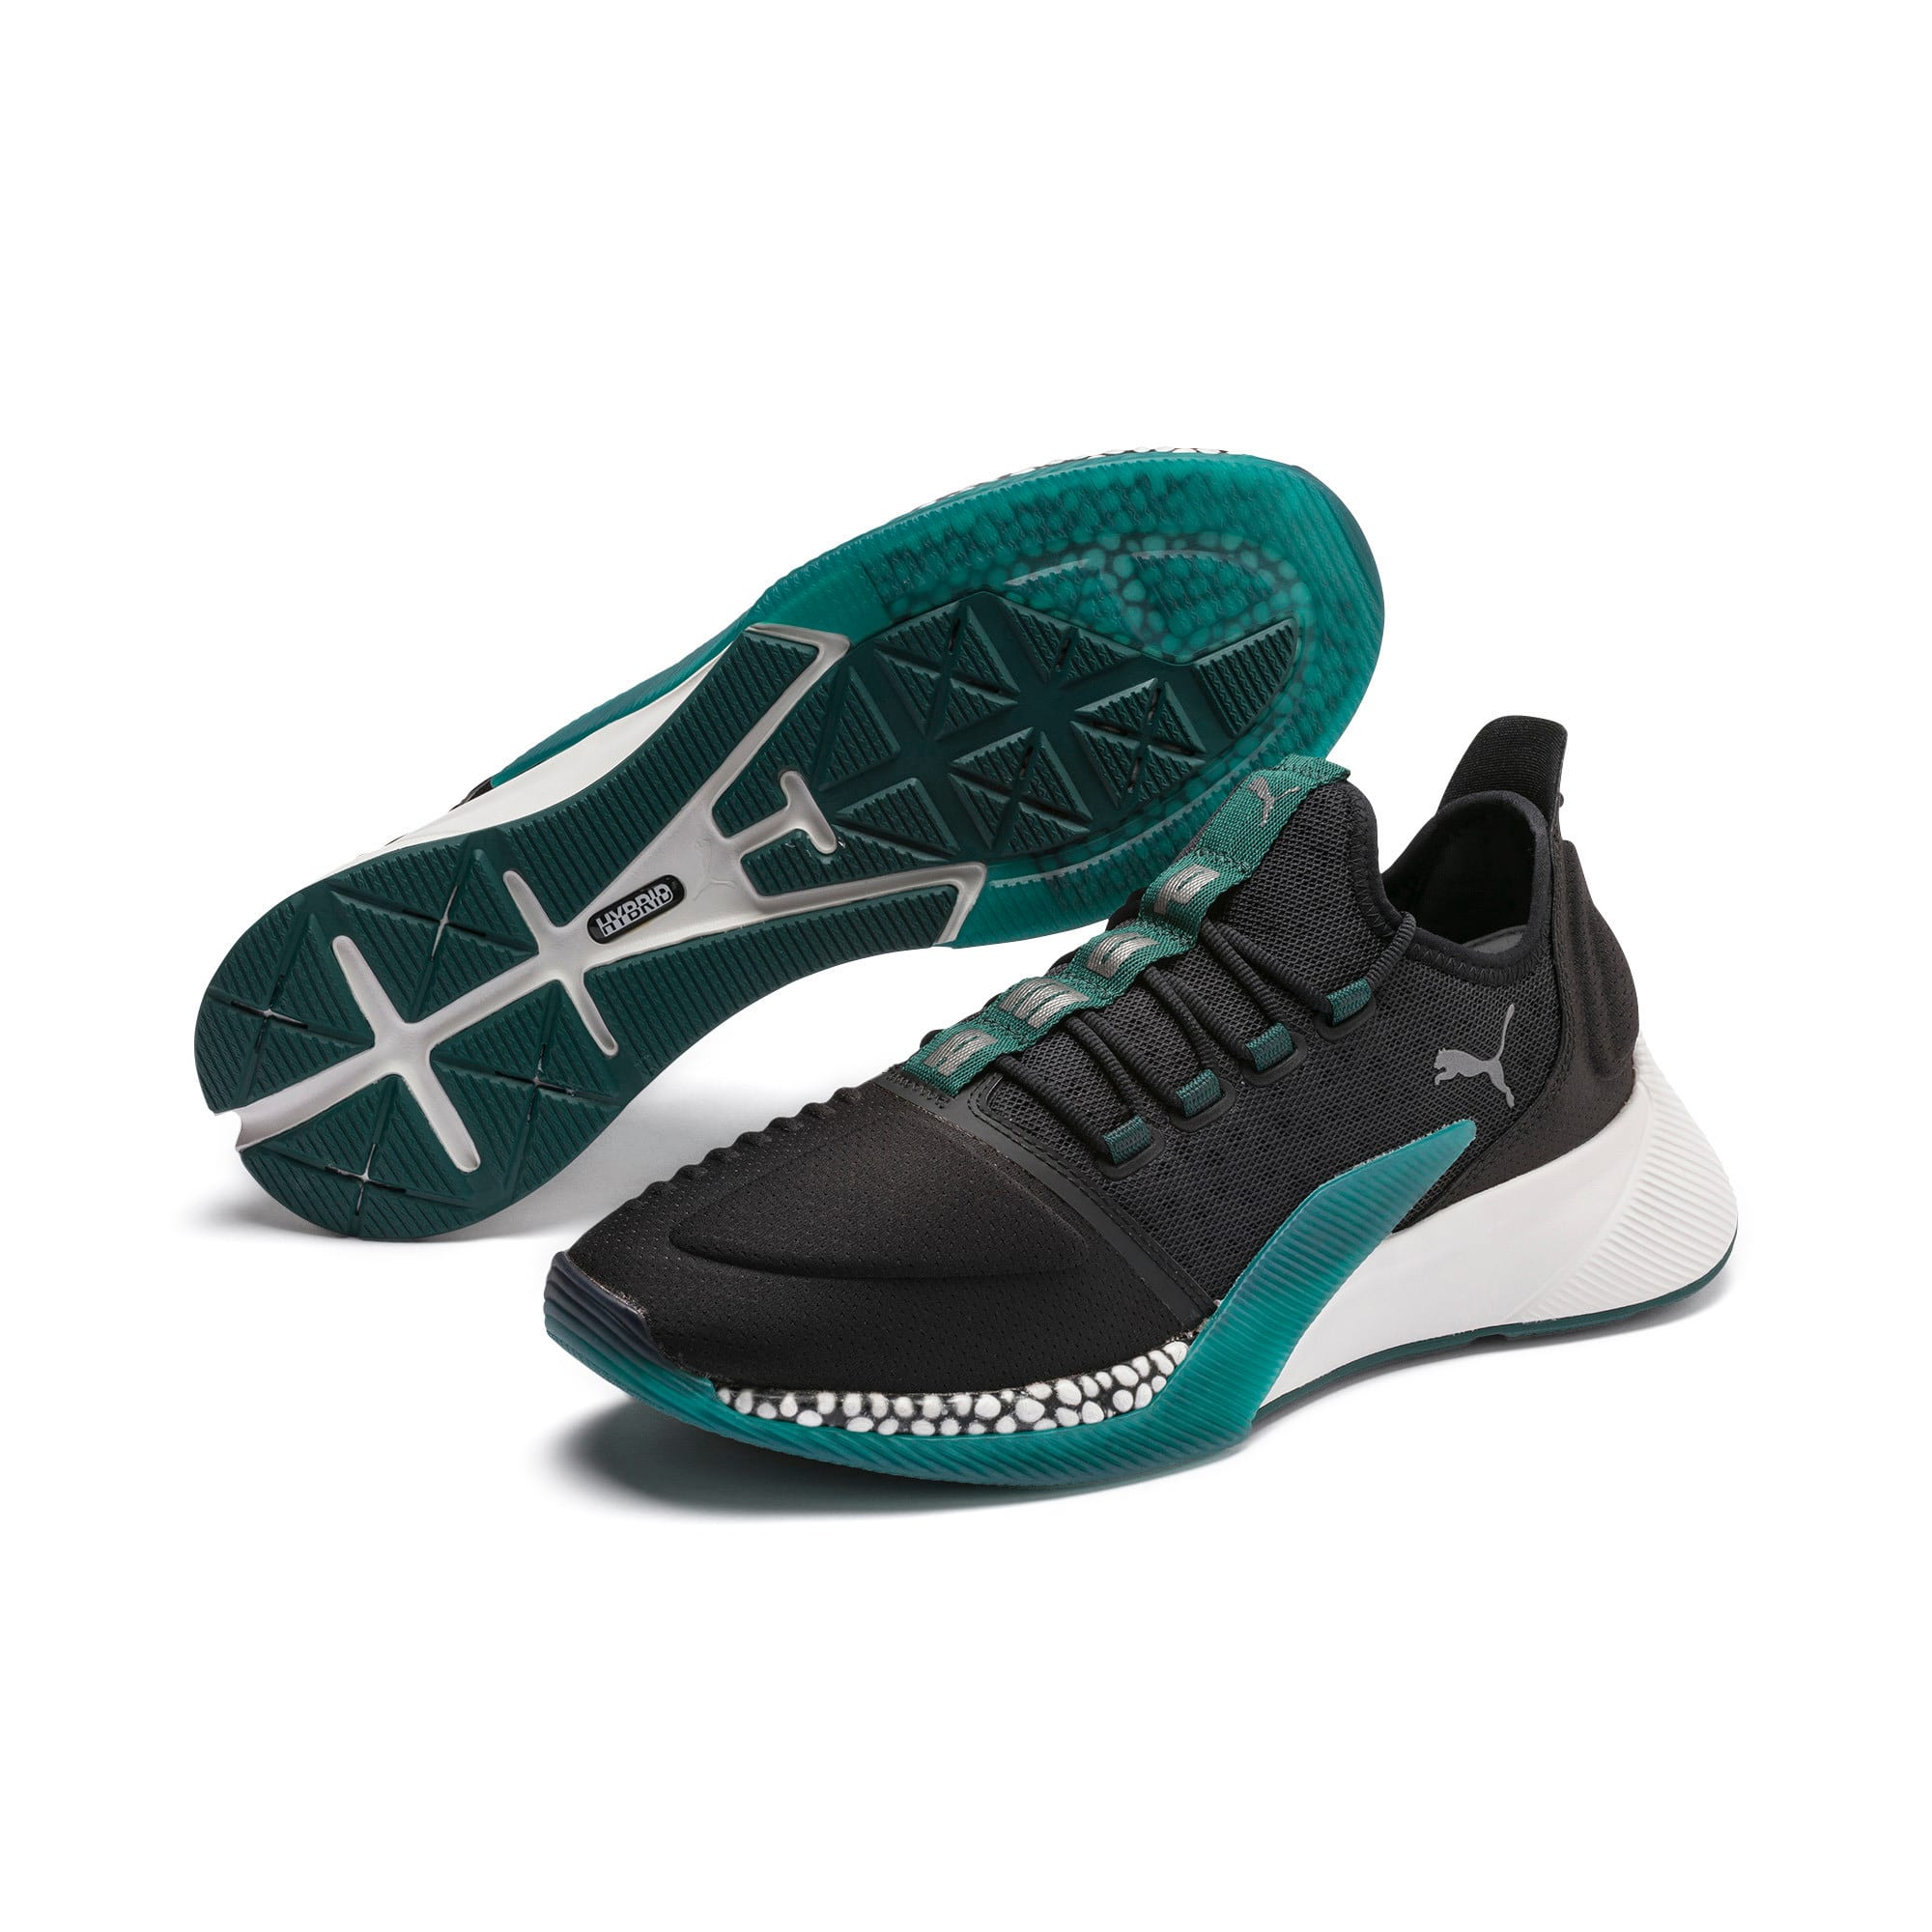 Thumbnail 3 of Chaussure de course Xcelerator, Black-Glacier Gray-Ponderosa, medium